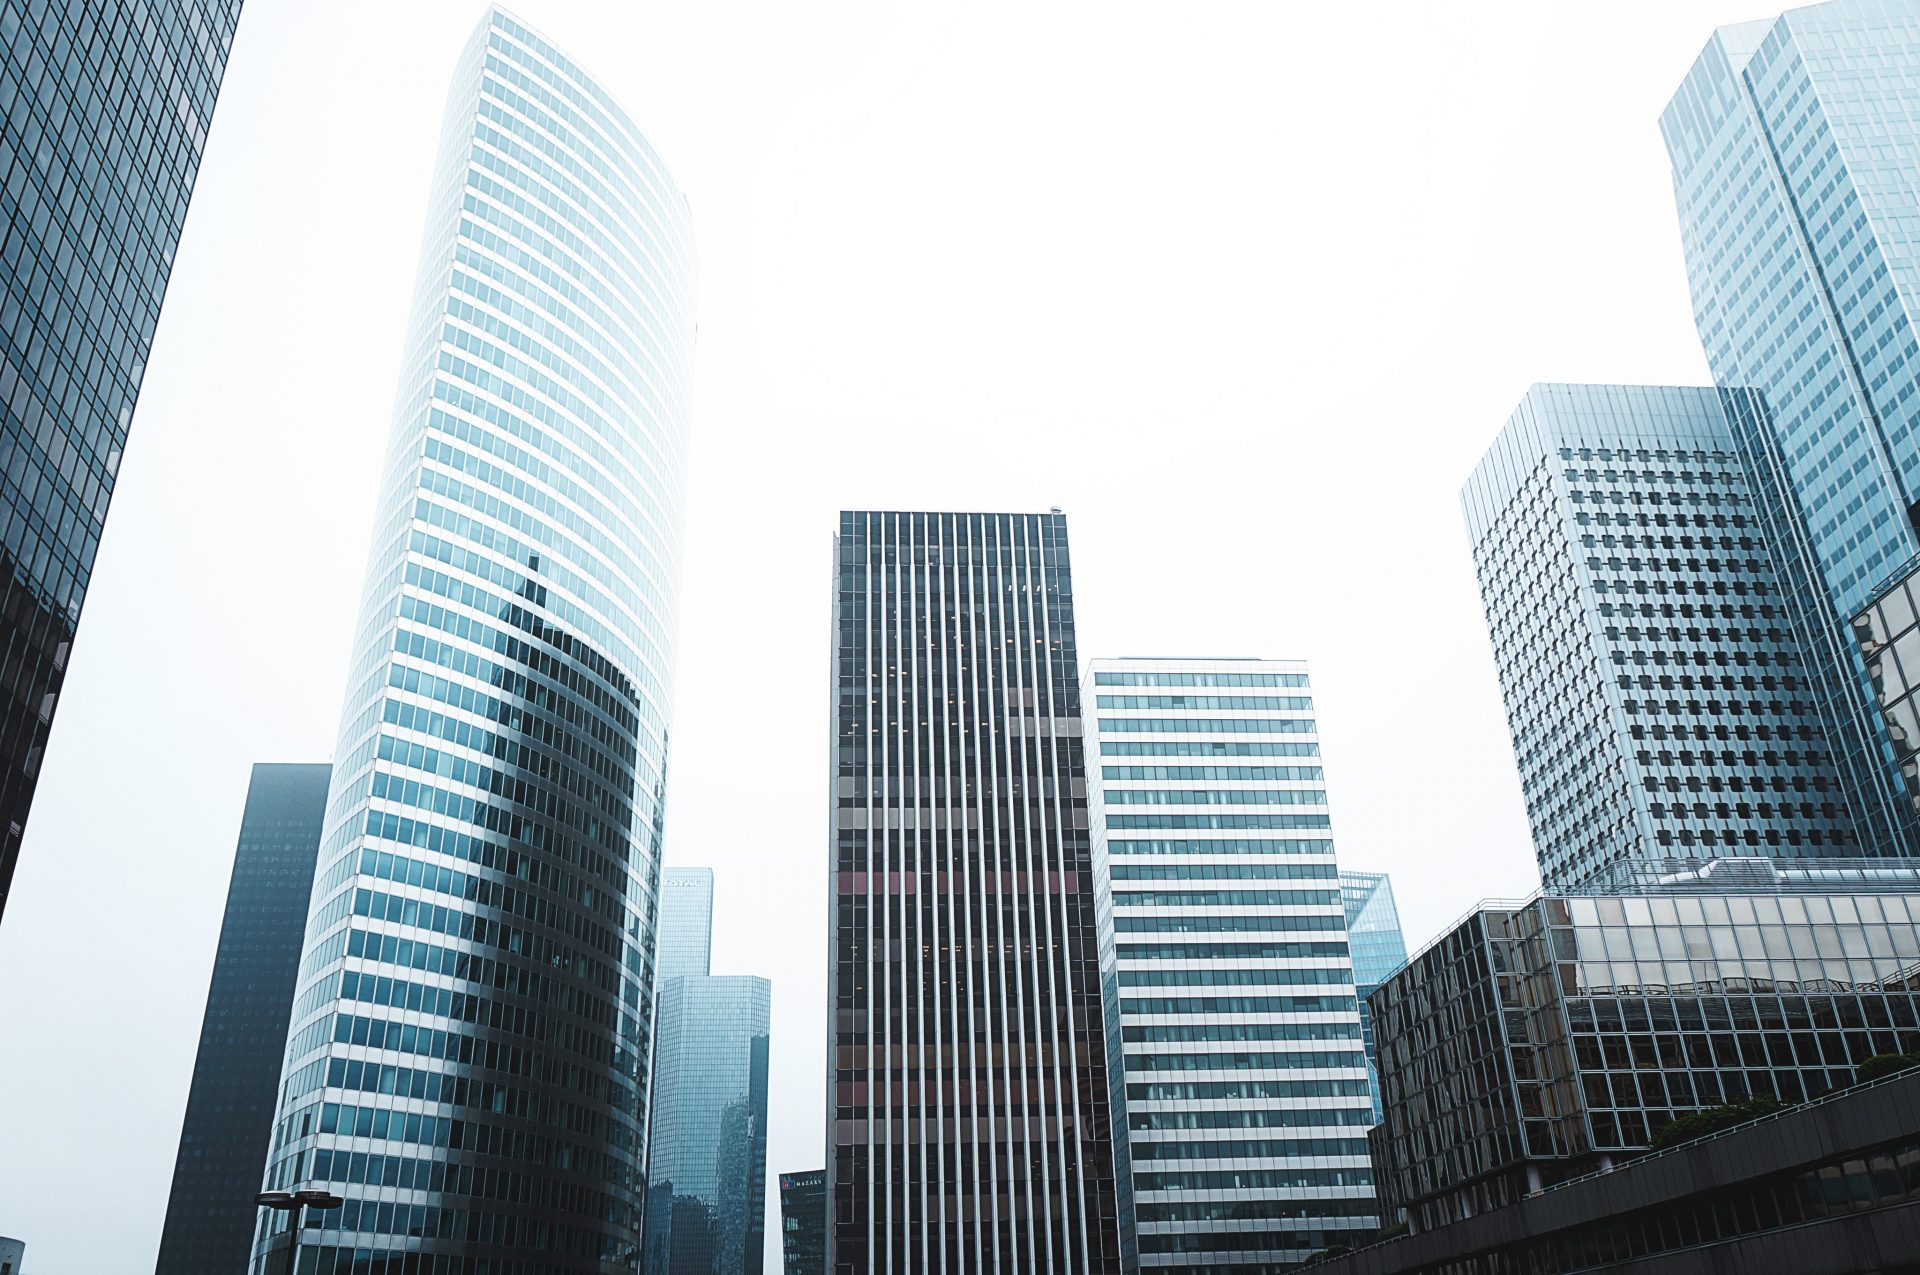 What You Should Know As A First-Time Commercial Real Estate Investor